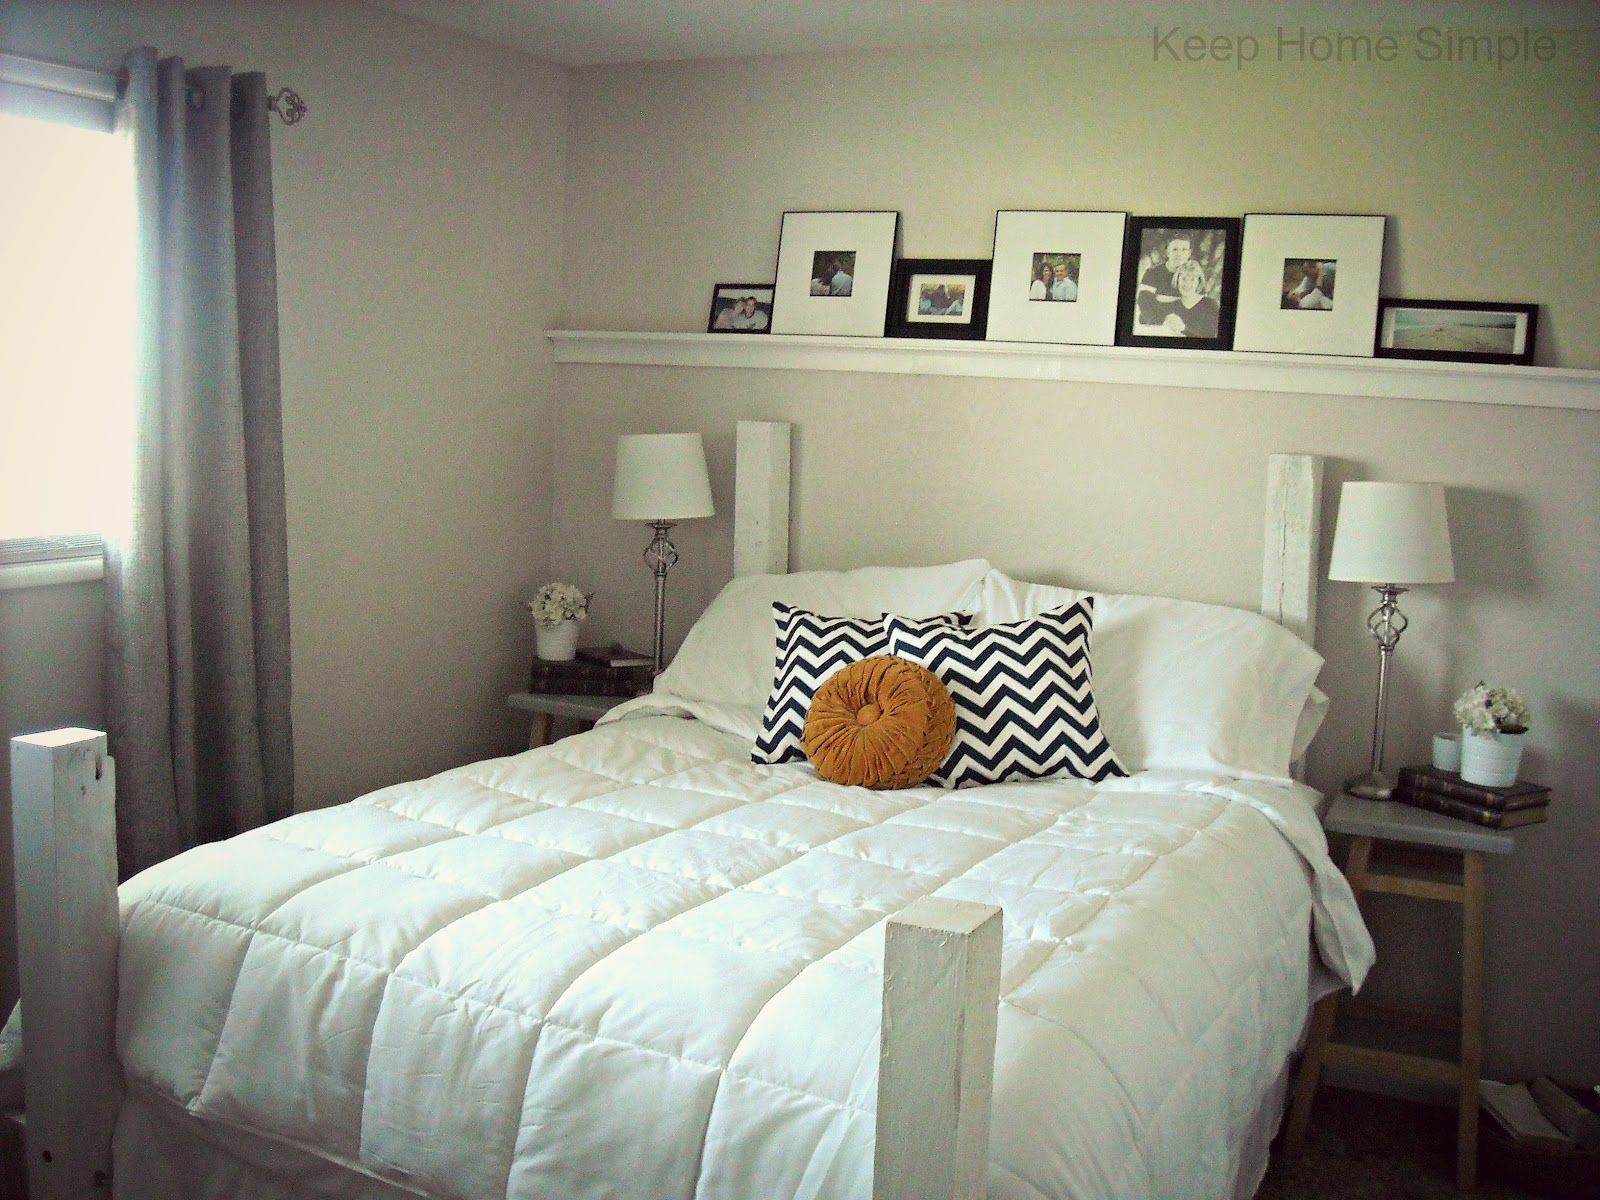 Keep Home Simple Redecorating Our Masterbedroom On A